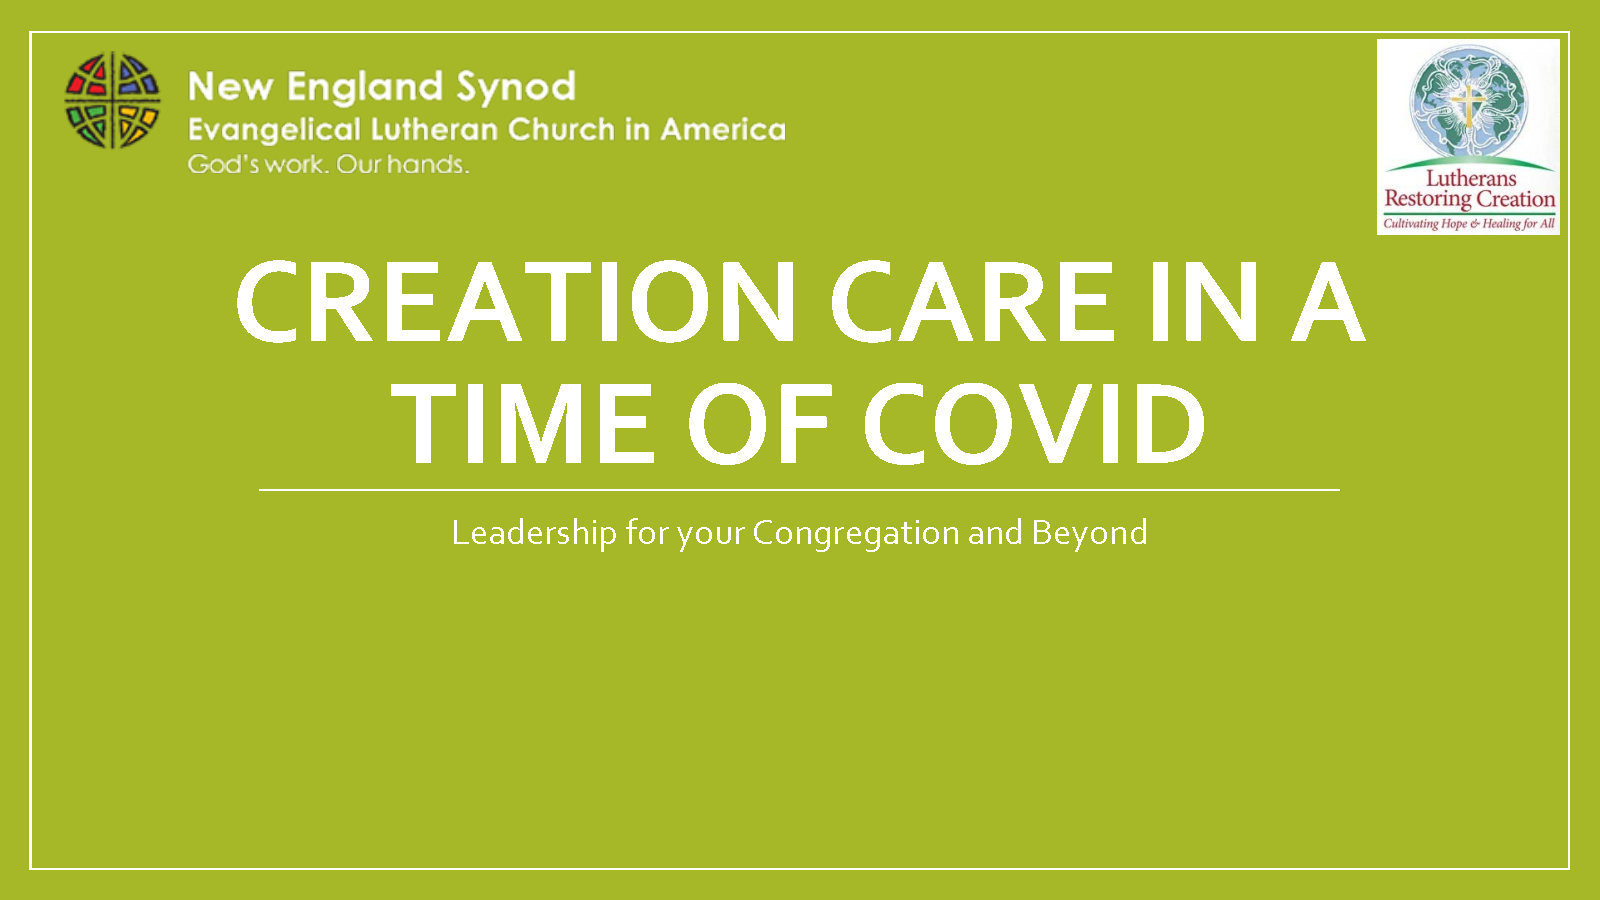 2020 05 18 Creation Care in a time of COVID cover